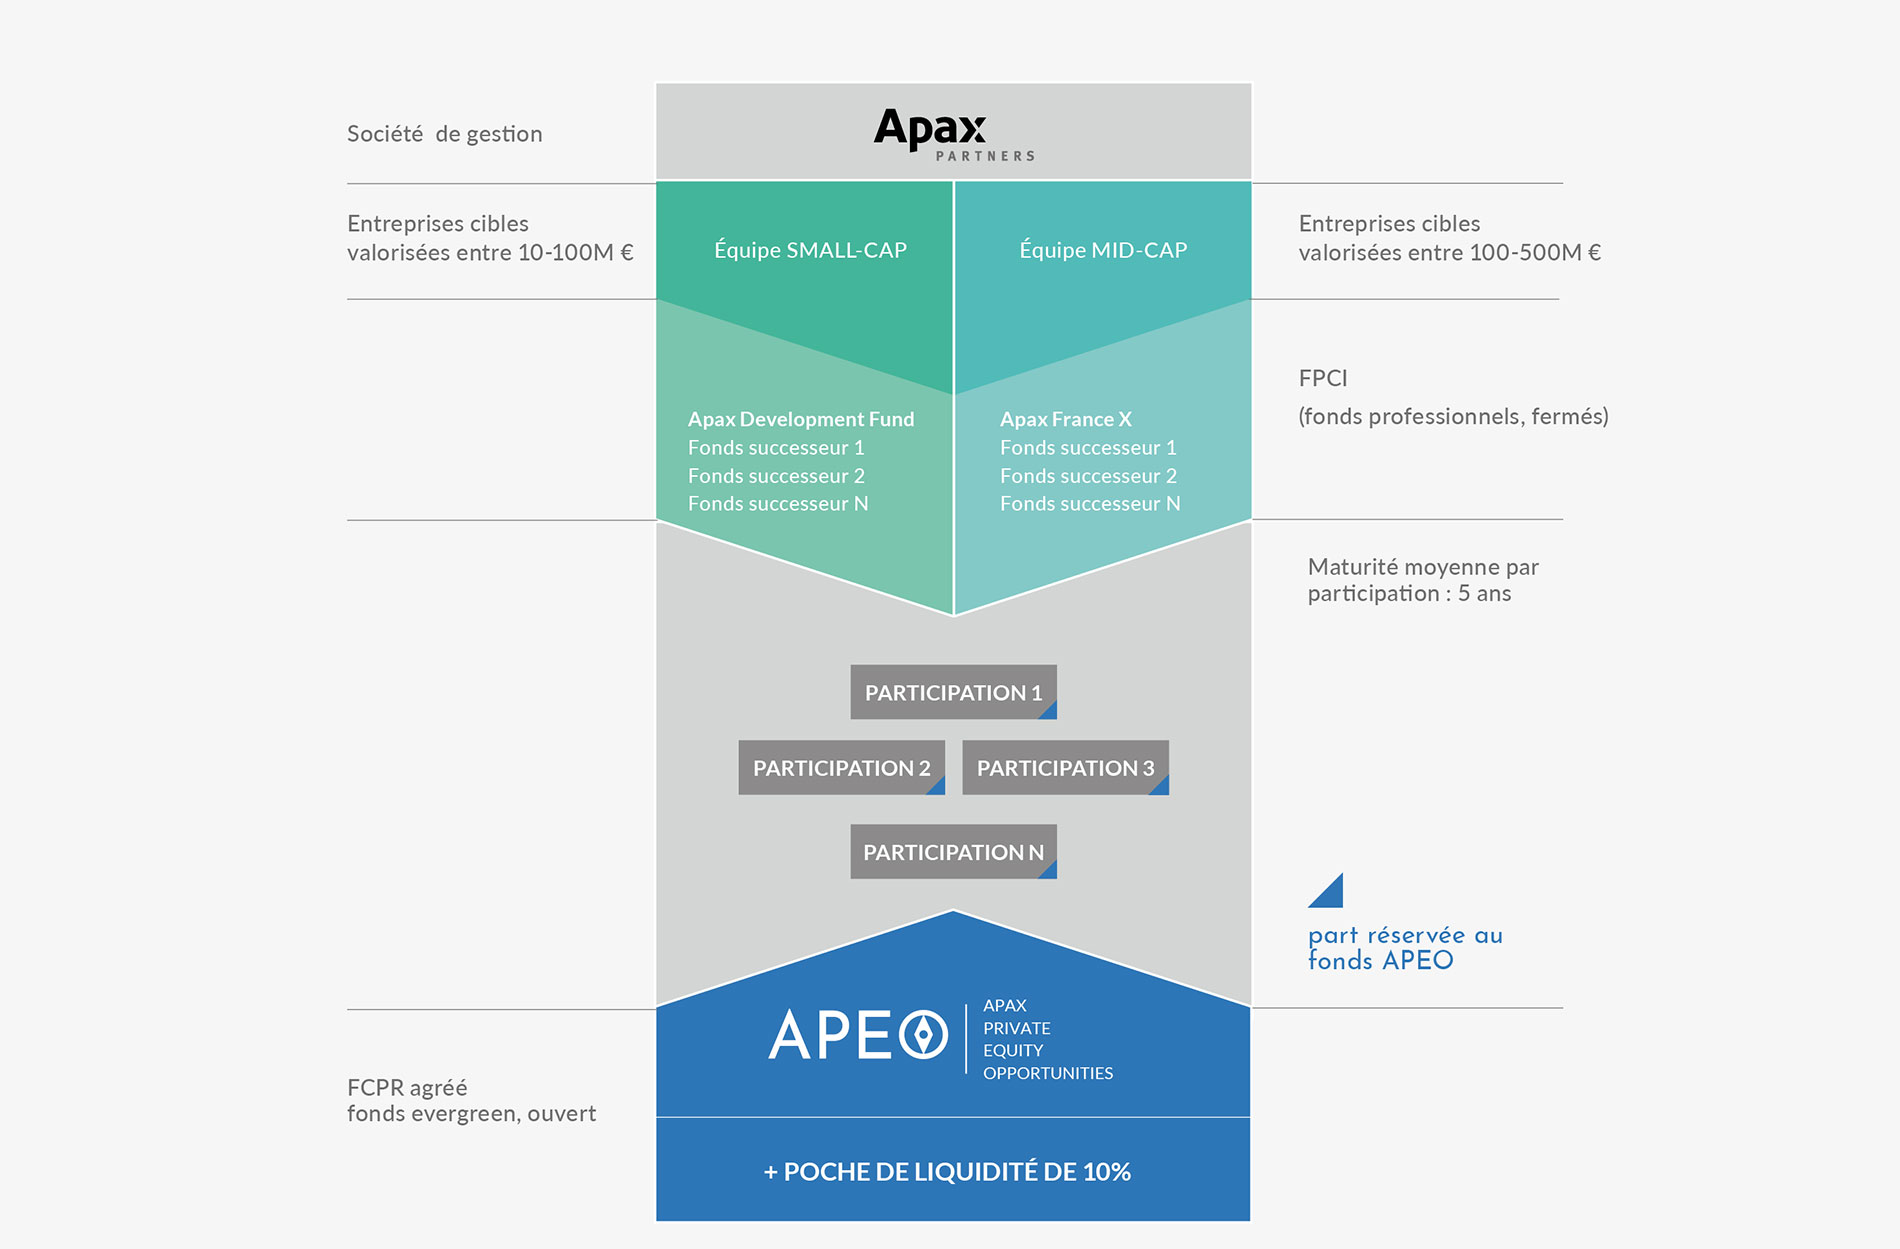 FCPR Apax Private Equity Opportunities - Repartition